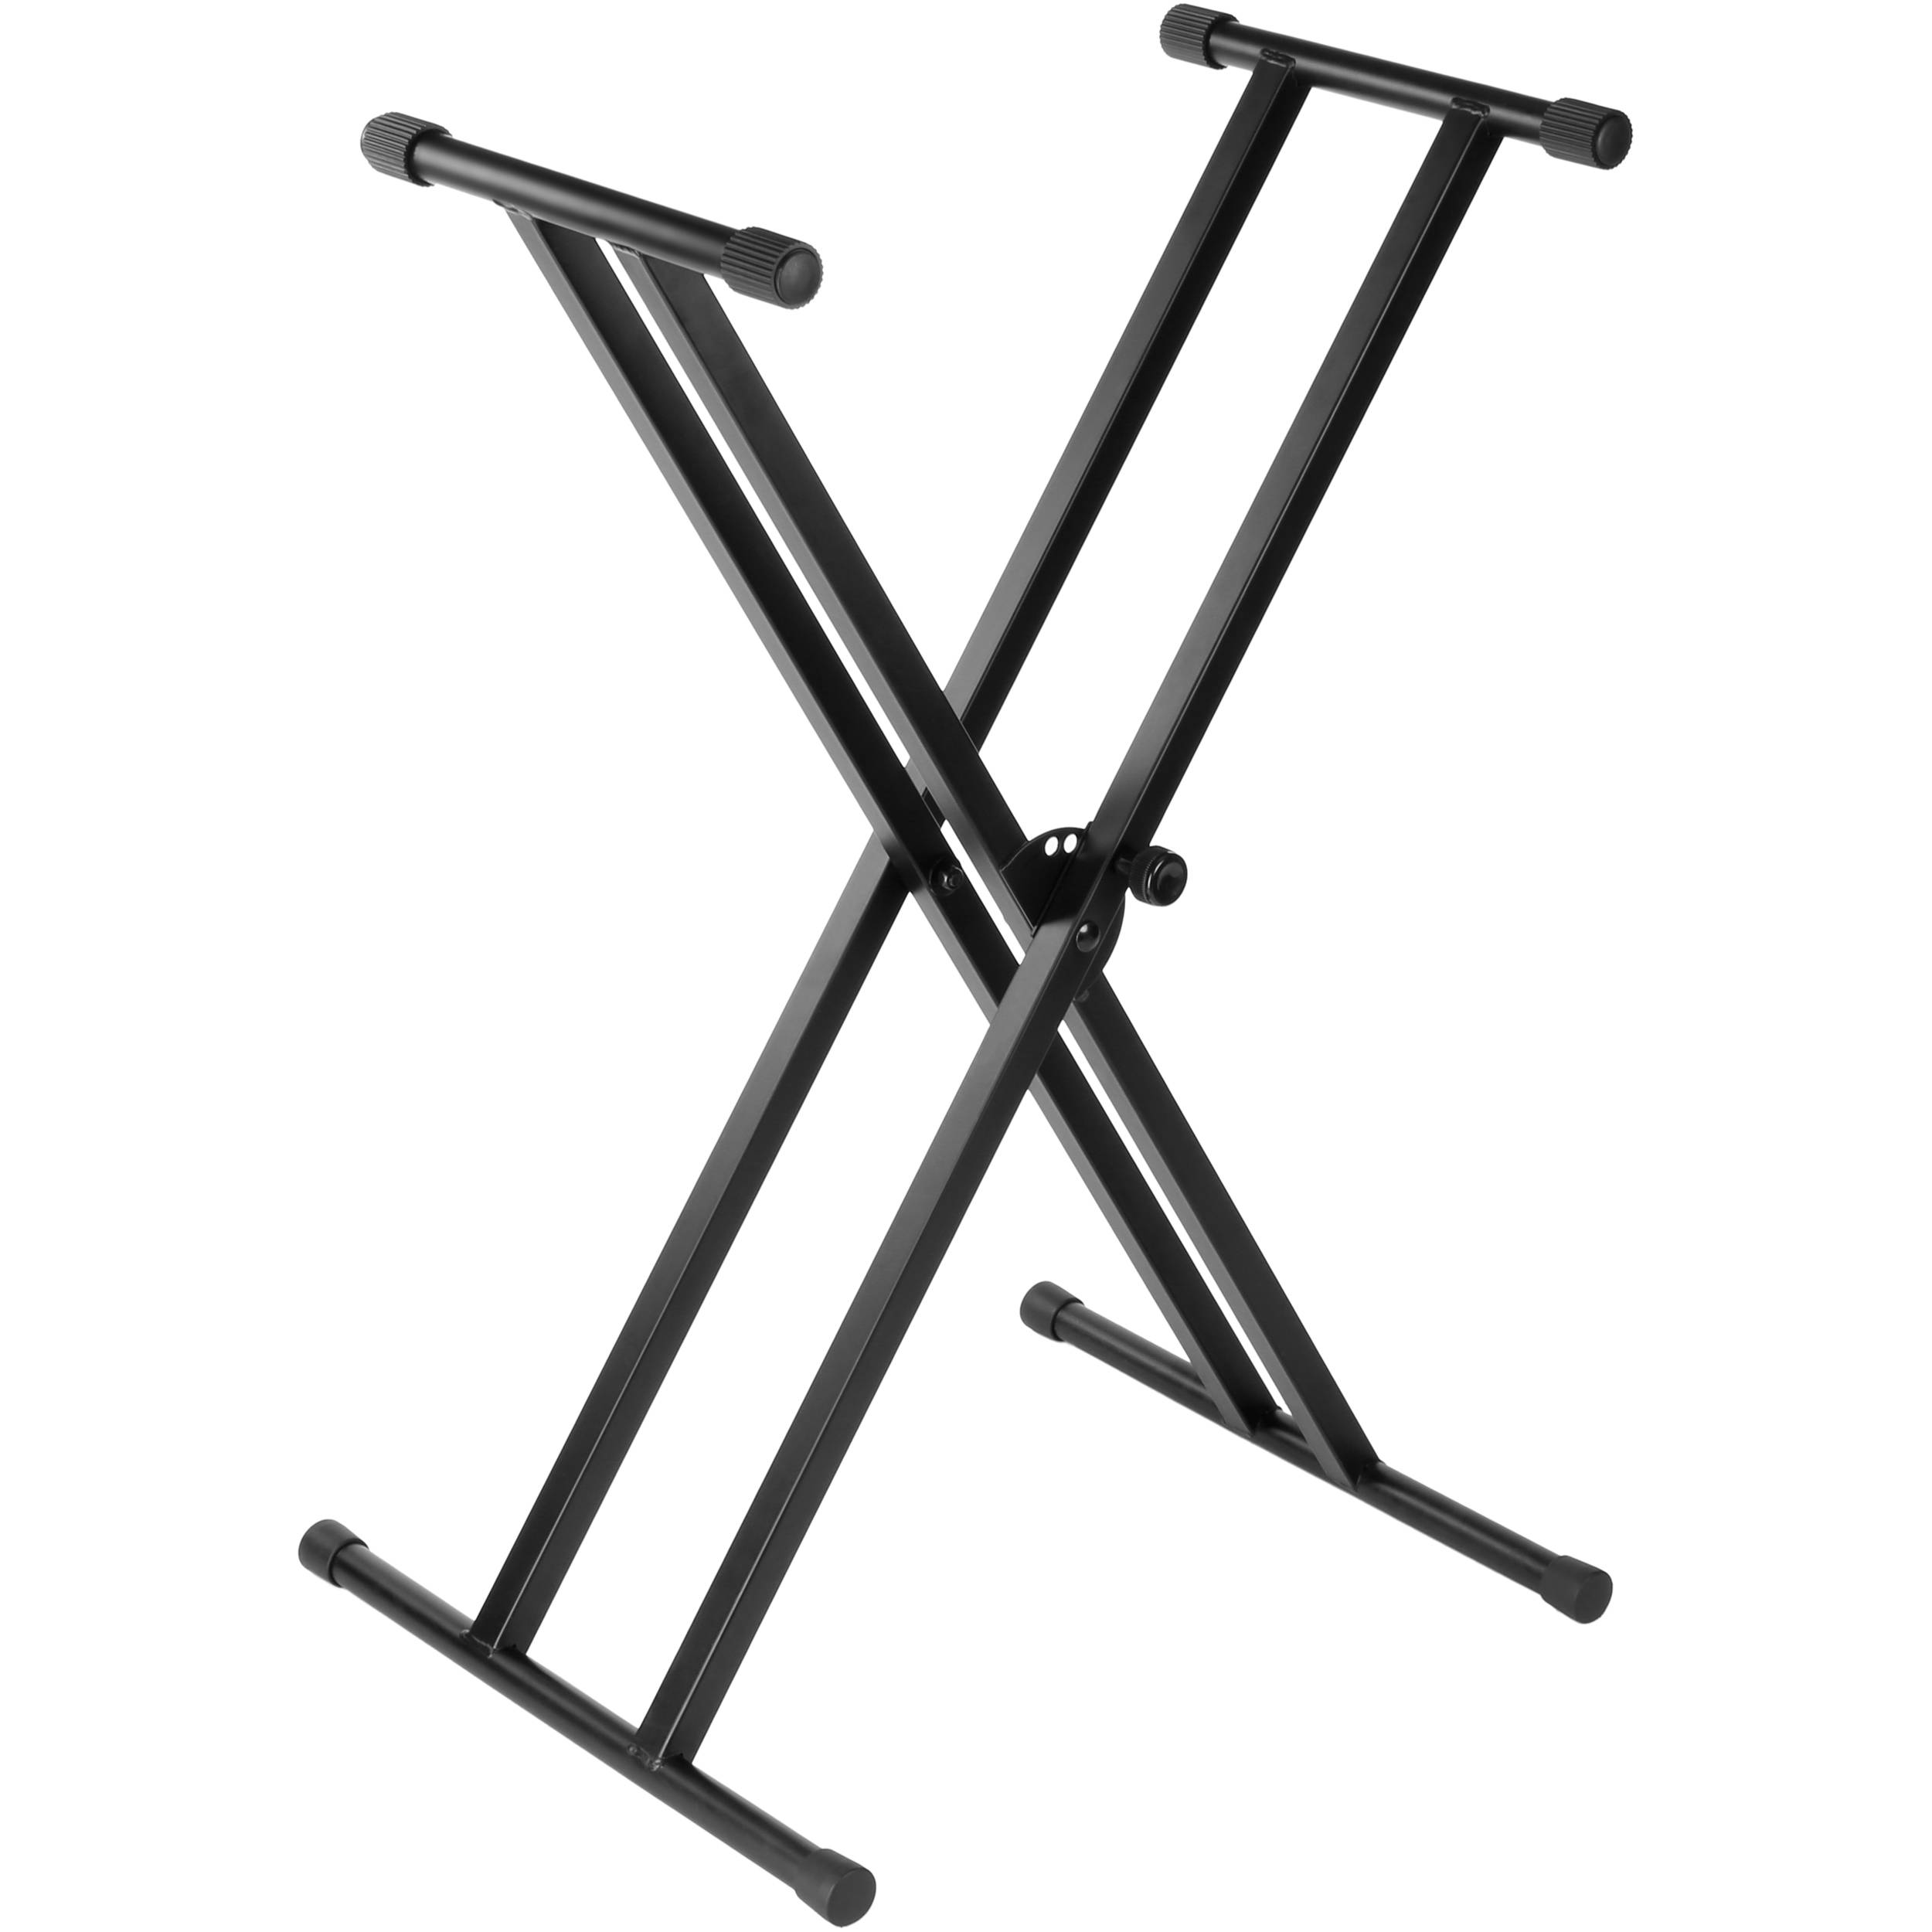 Looking for a nice stand for Yamaha P155 : piano